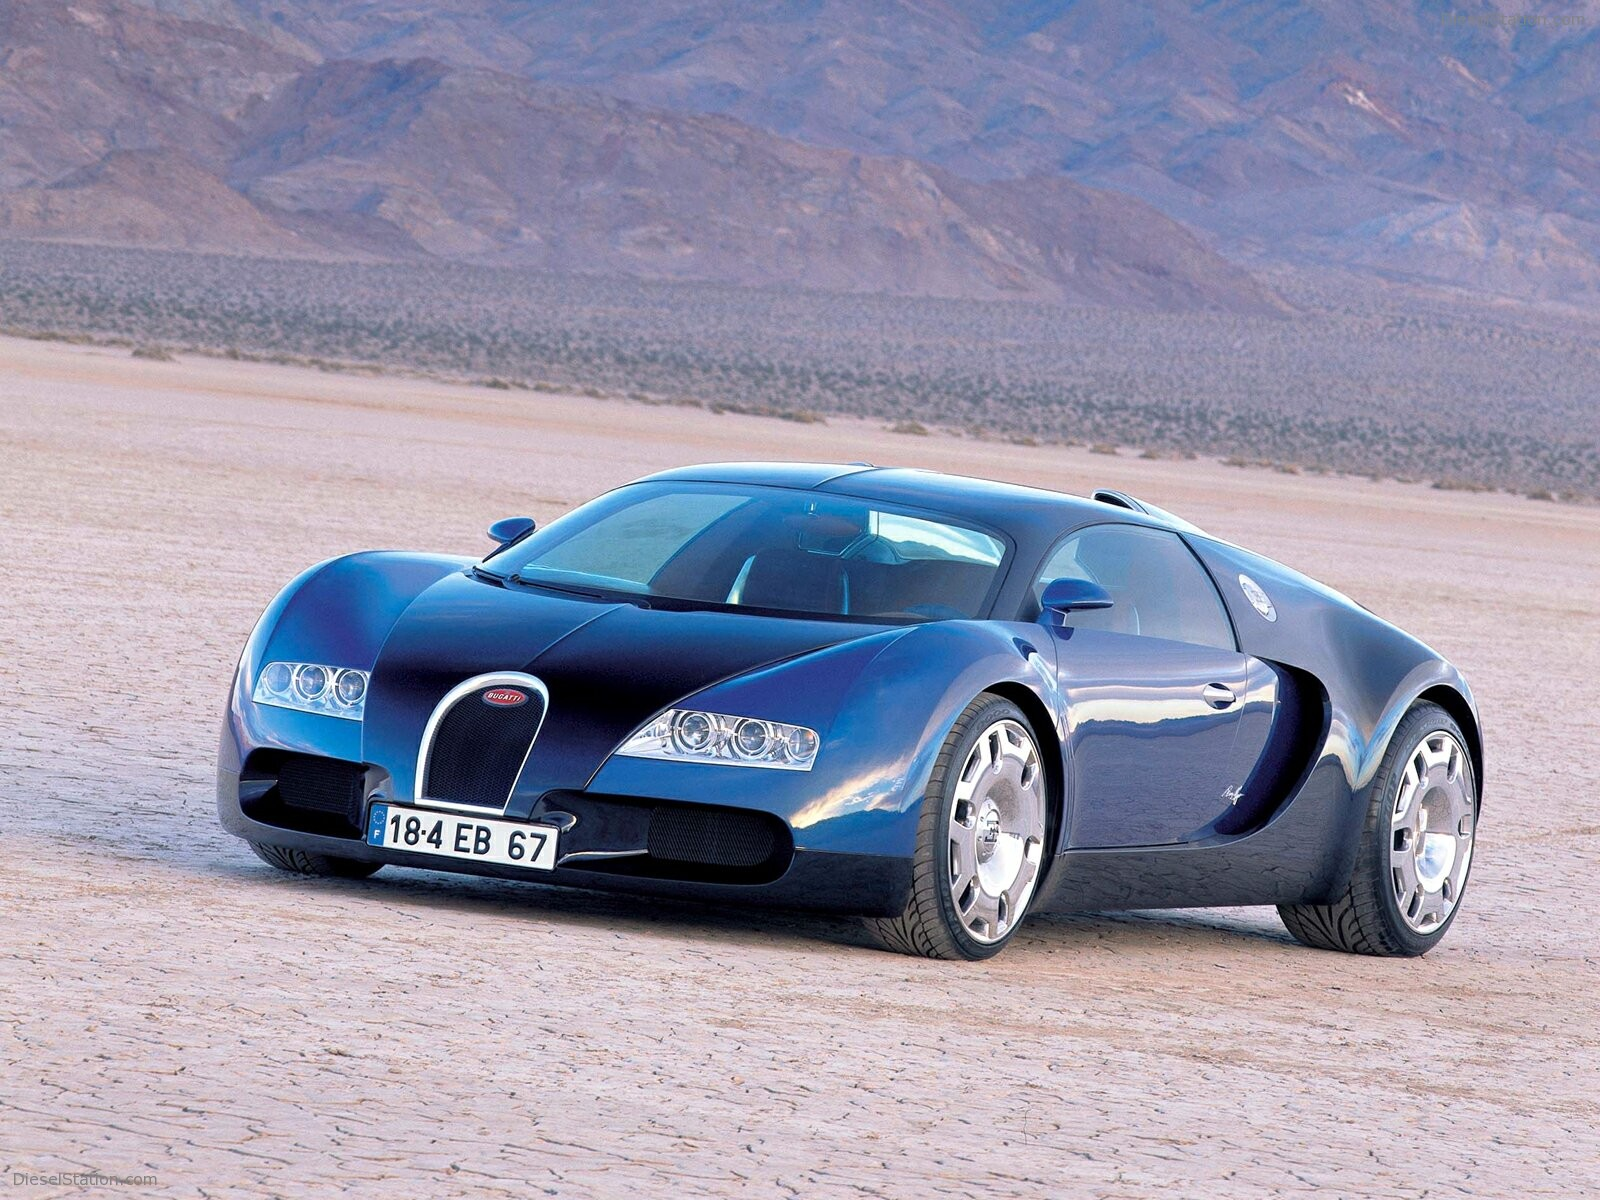 Bugatti Veyron Exotic Car Wallpaper 027 of 85 Diesel 1600x1200